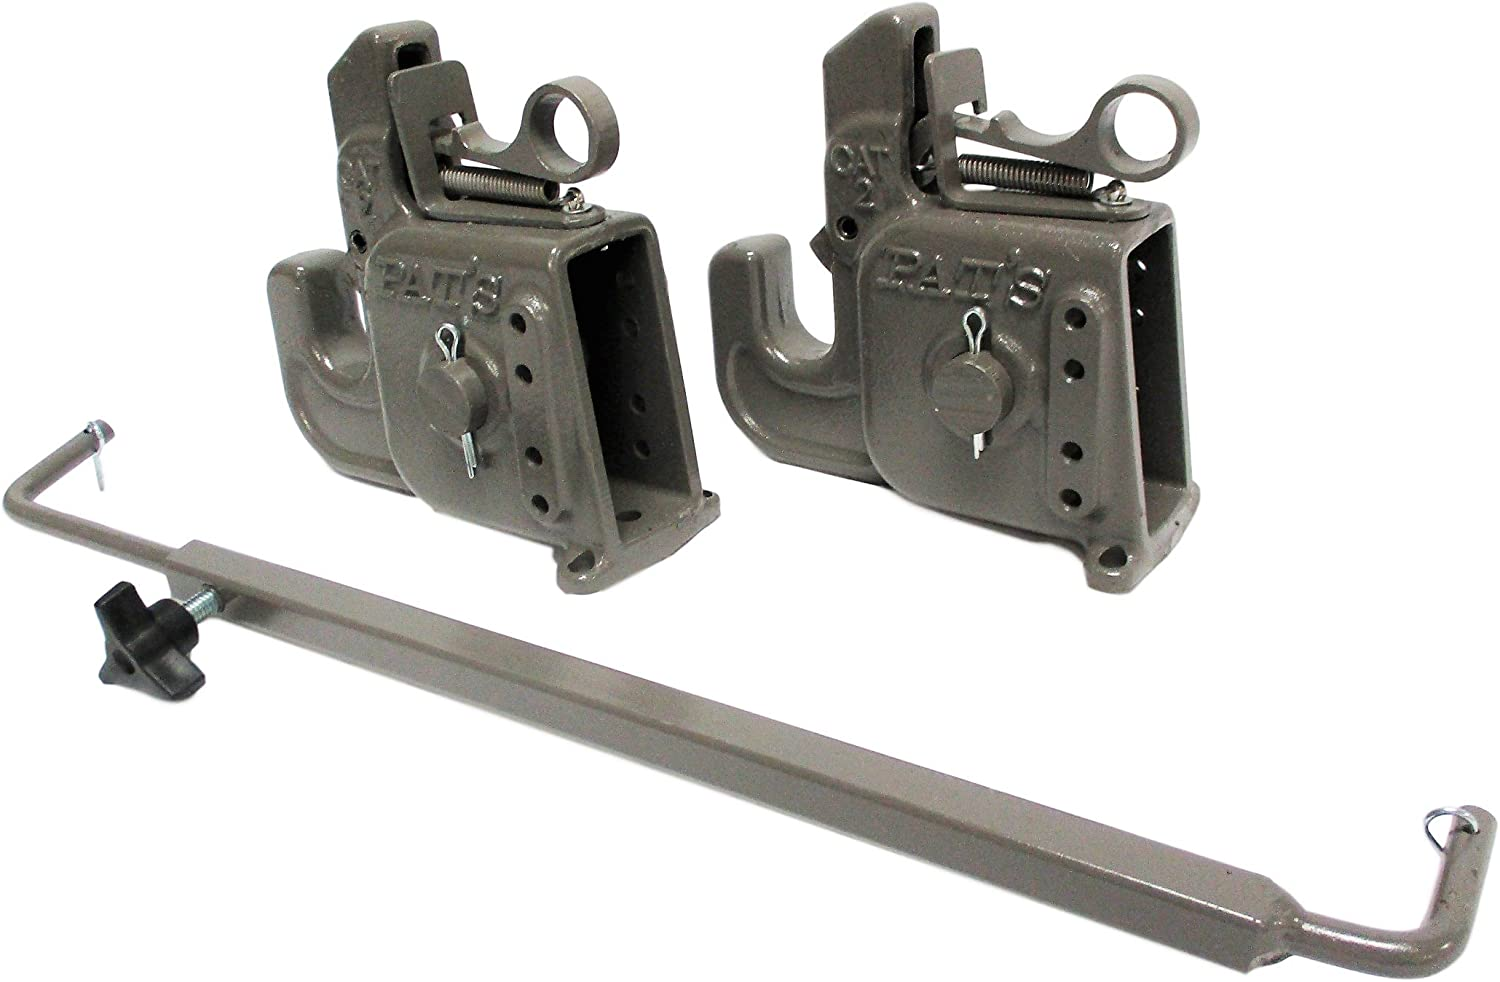 Best Quick Hitch System On The Market Durable and Affordable Blue CAT #1 Pats Easy Change with Stabilizer Bar Flexible